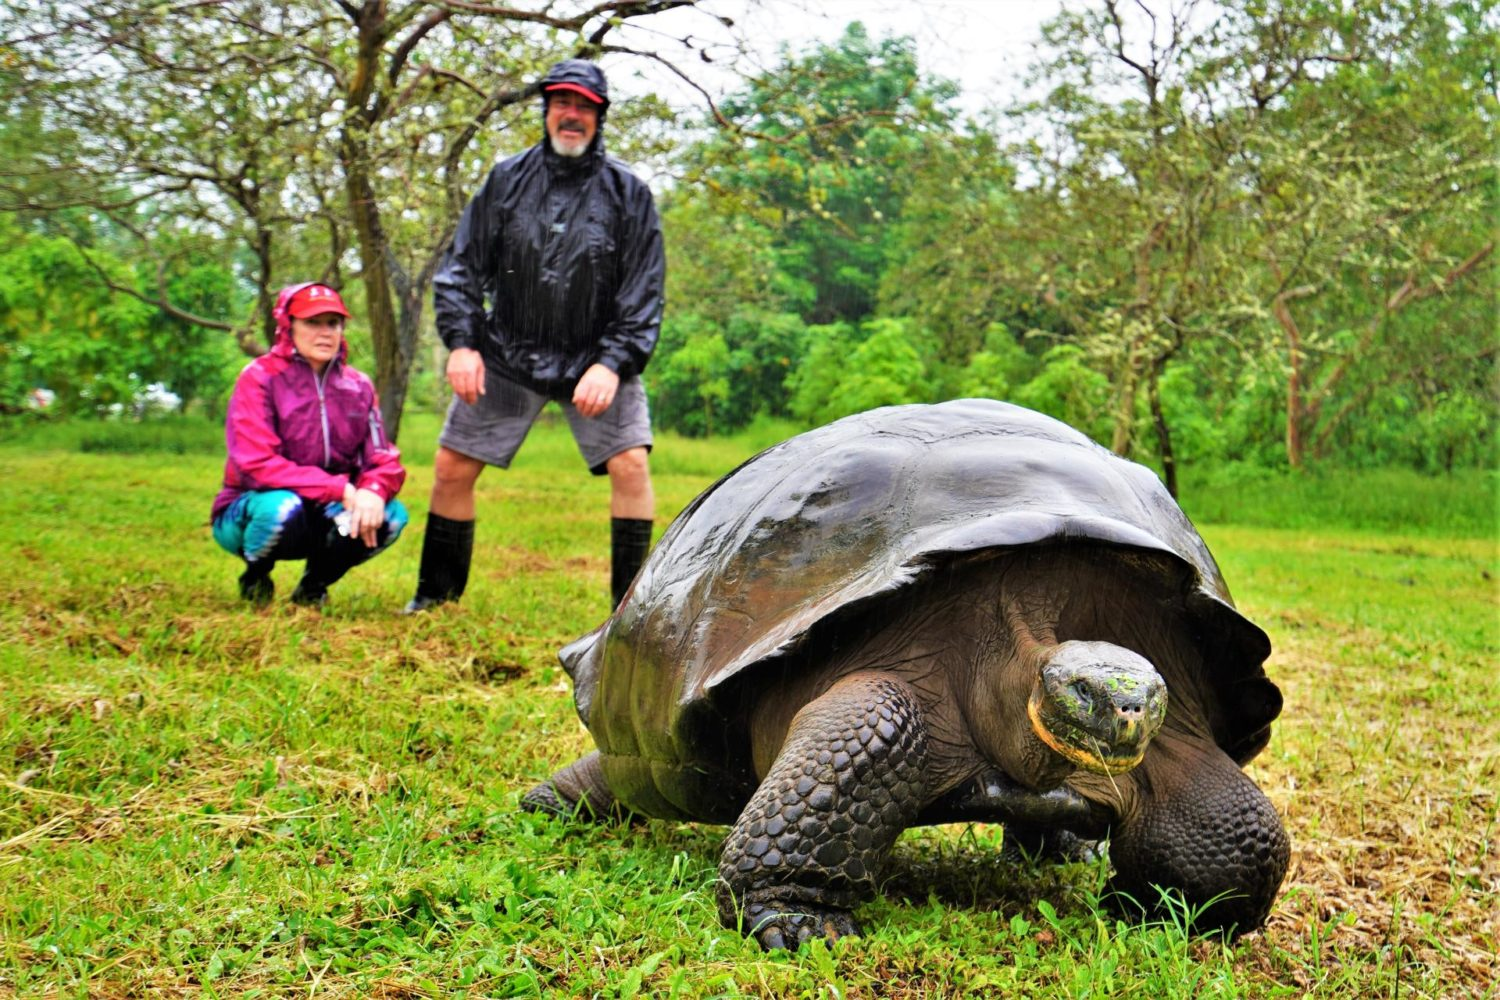 A man watching a Galapagos tortoise